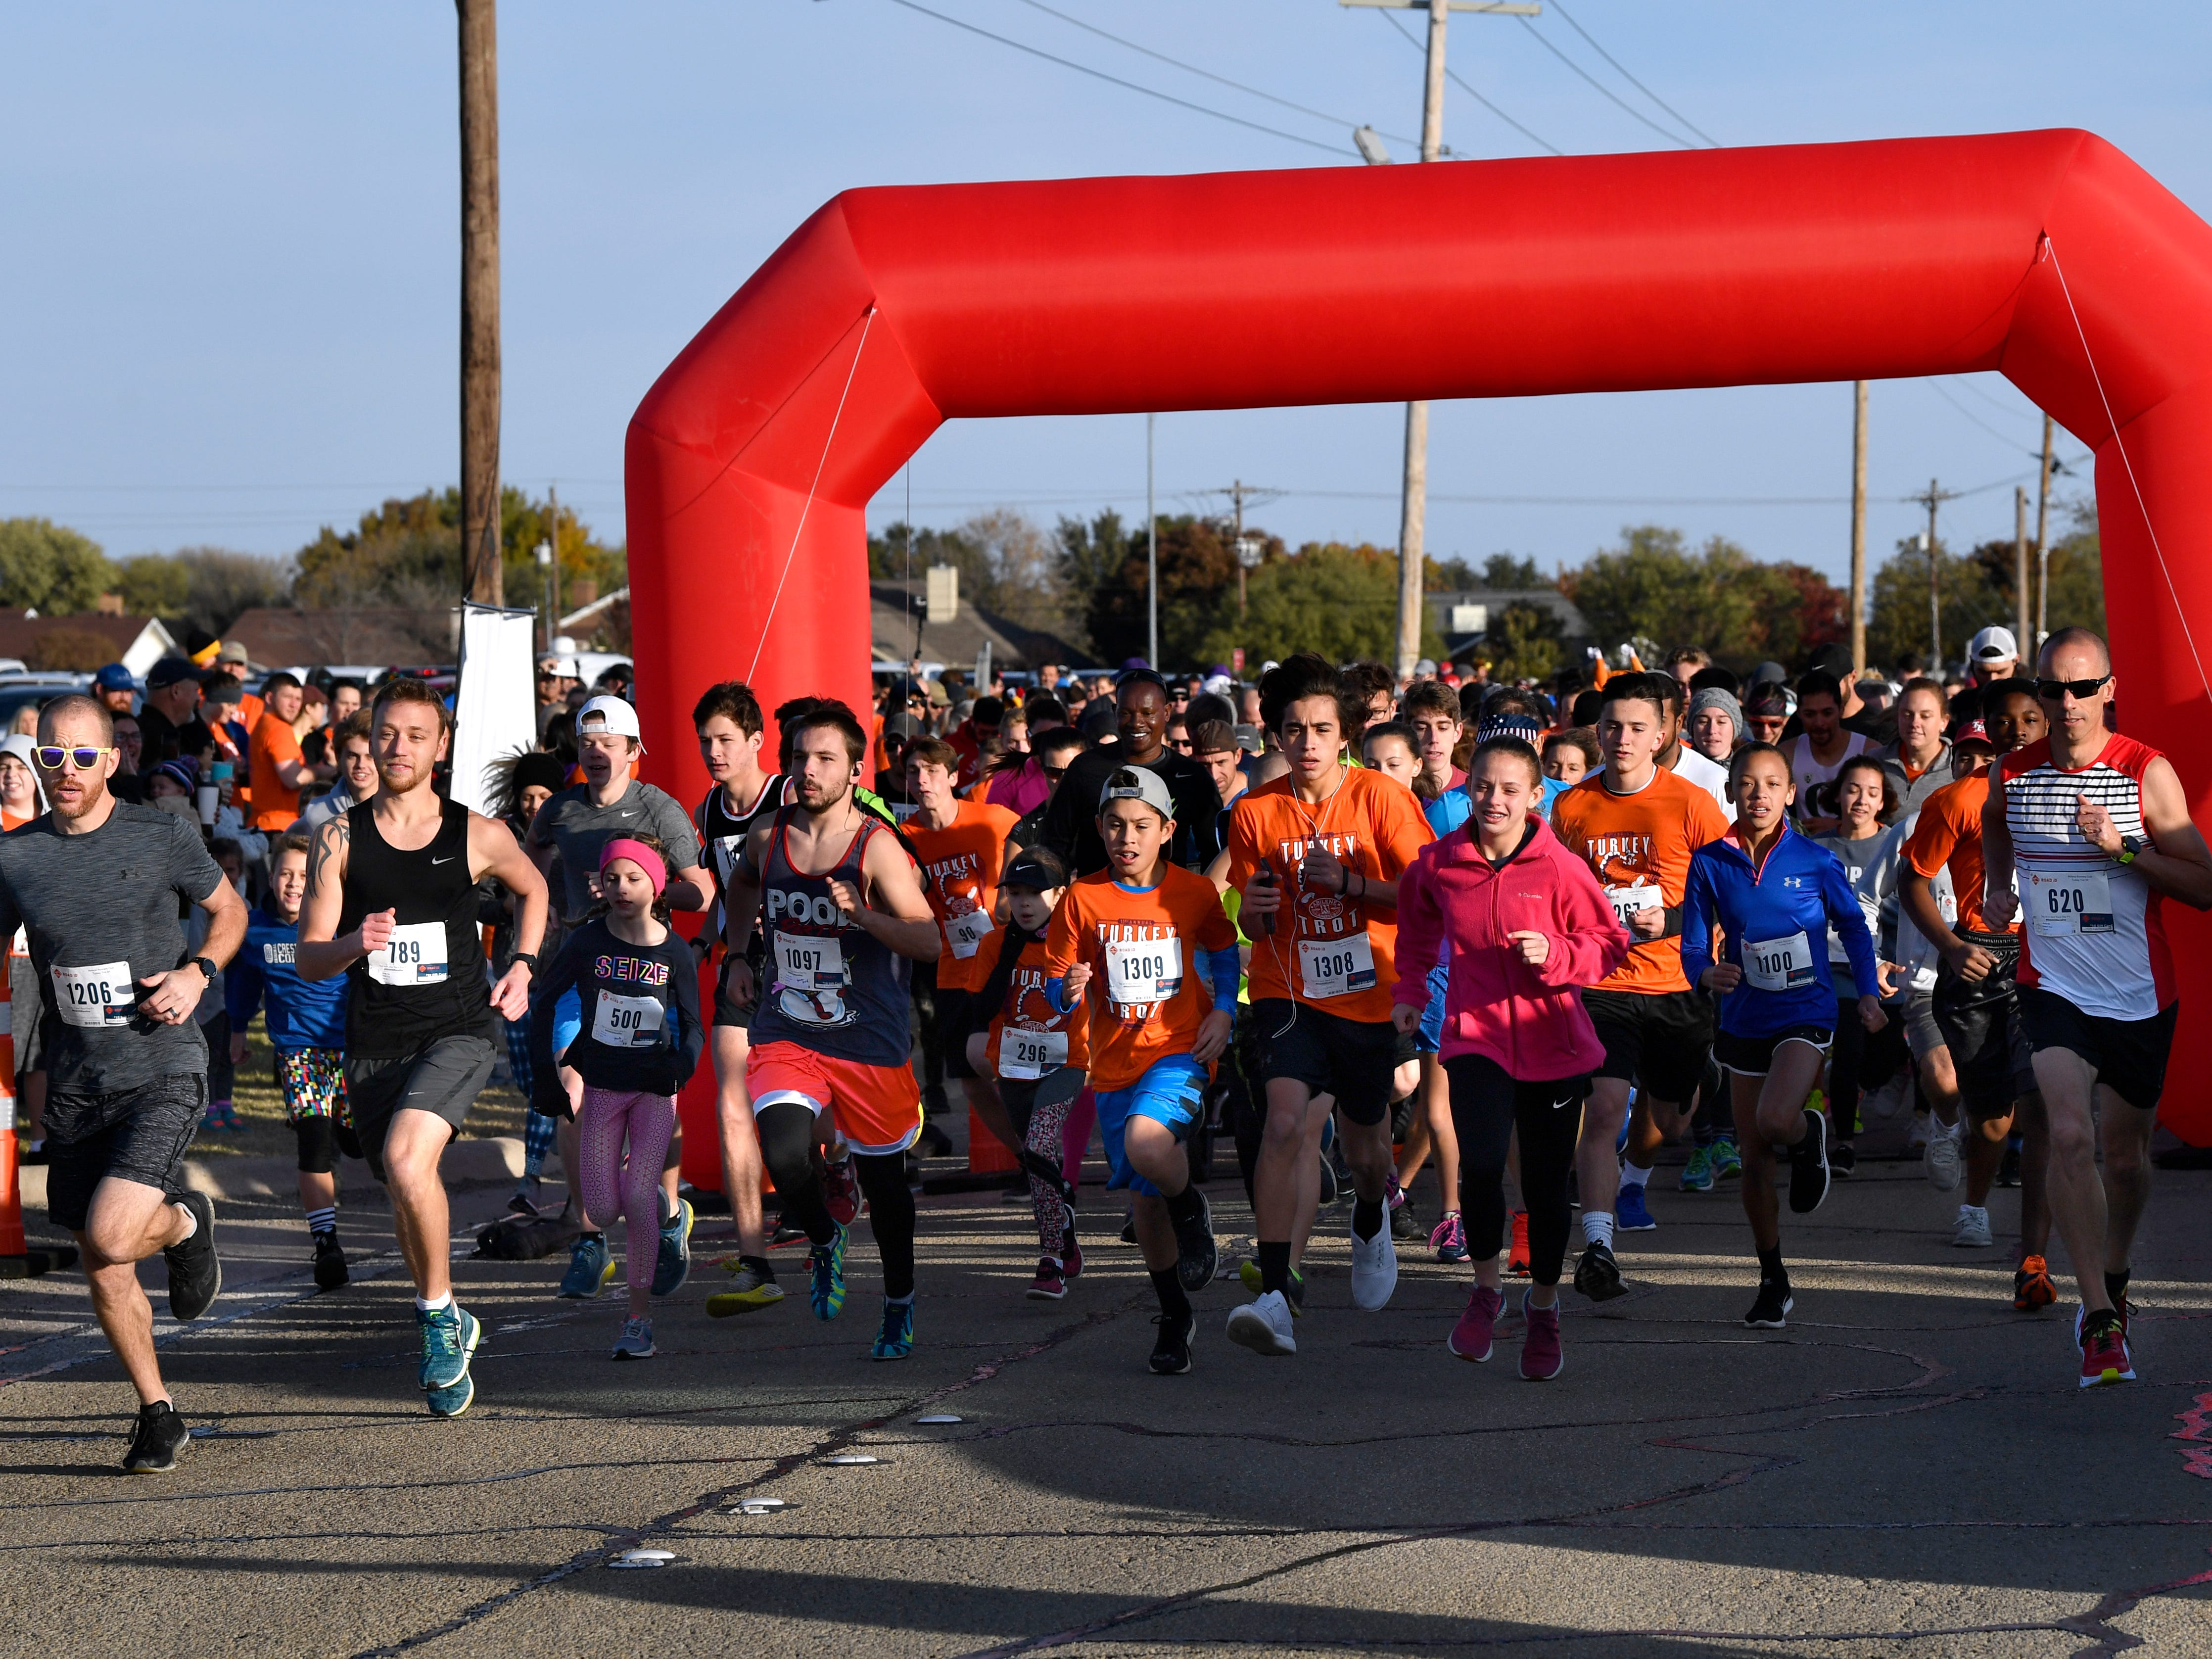 "Runners begin the annual Abilene Turkey Trot Thursday Nov. 22, 2018. Sponsored by the Abilene Runners Club, the Thanksgiving 5K course started at Shotwell Stadium, went through the adjacent Lytle neighborhood, then finished back at Shotwell. Proceeds benefited the West Texas Rehab Center and the Abilene Runners Club; their motto for the day was, ""Walk/run 3.1 miles and eat guilt free the rest of the day!"""